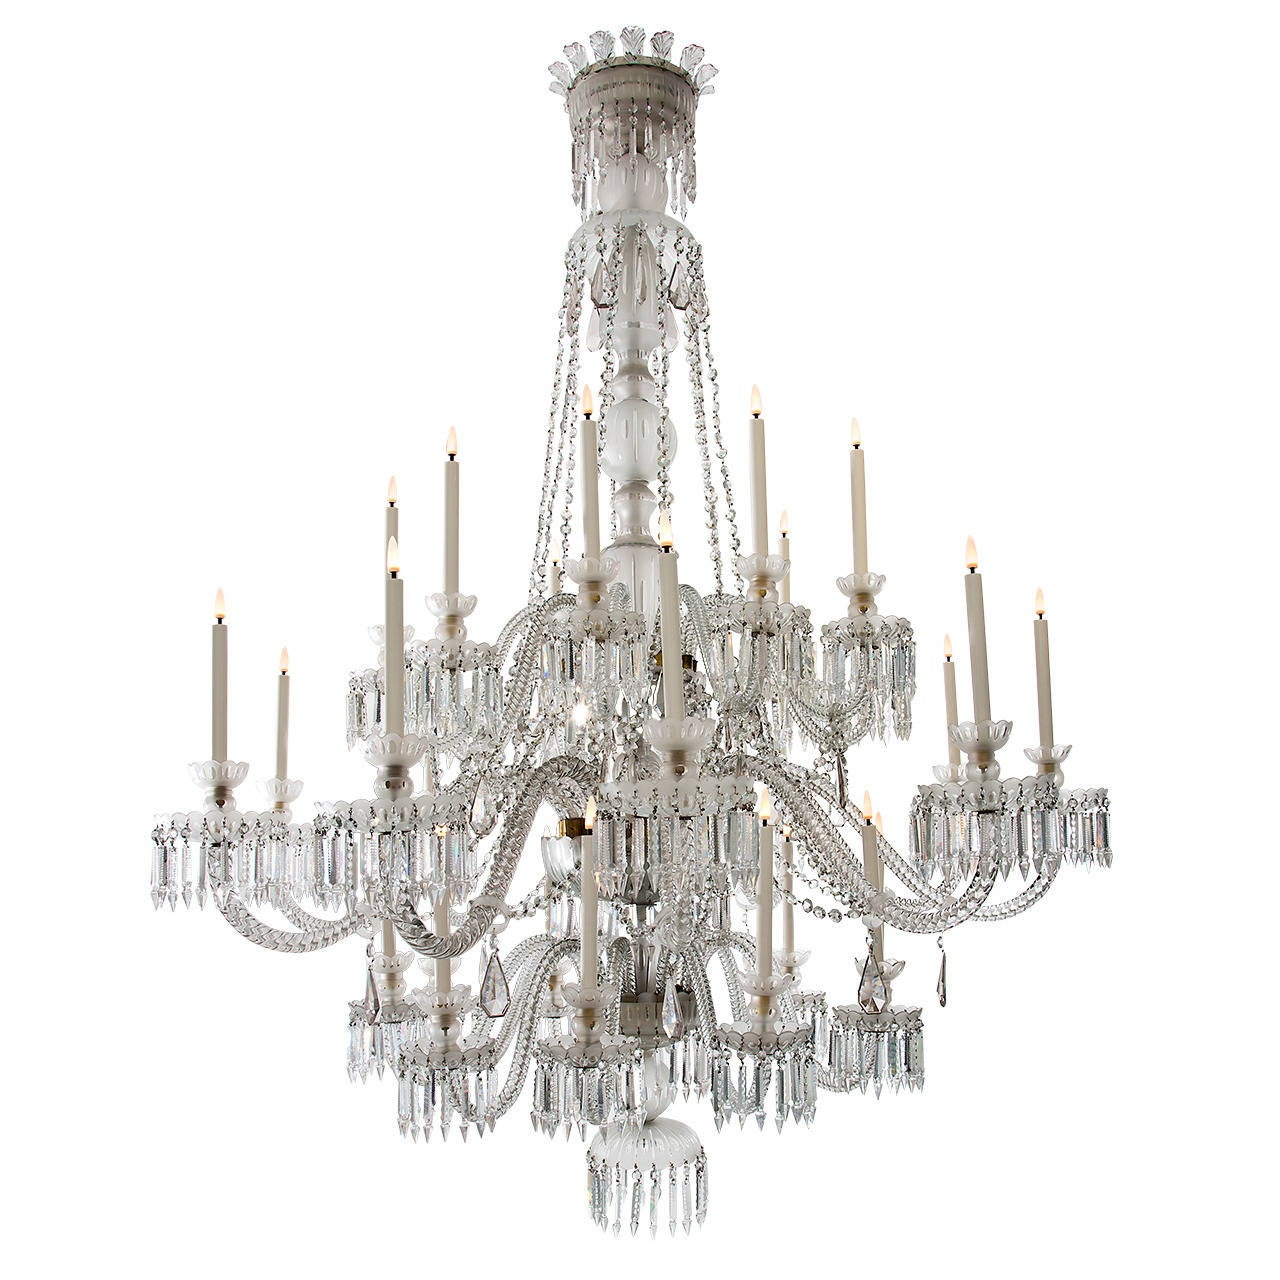 Impressive Crystal Chandelier By Baccarat For Sale At 1stdibs